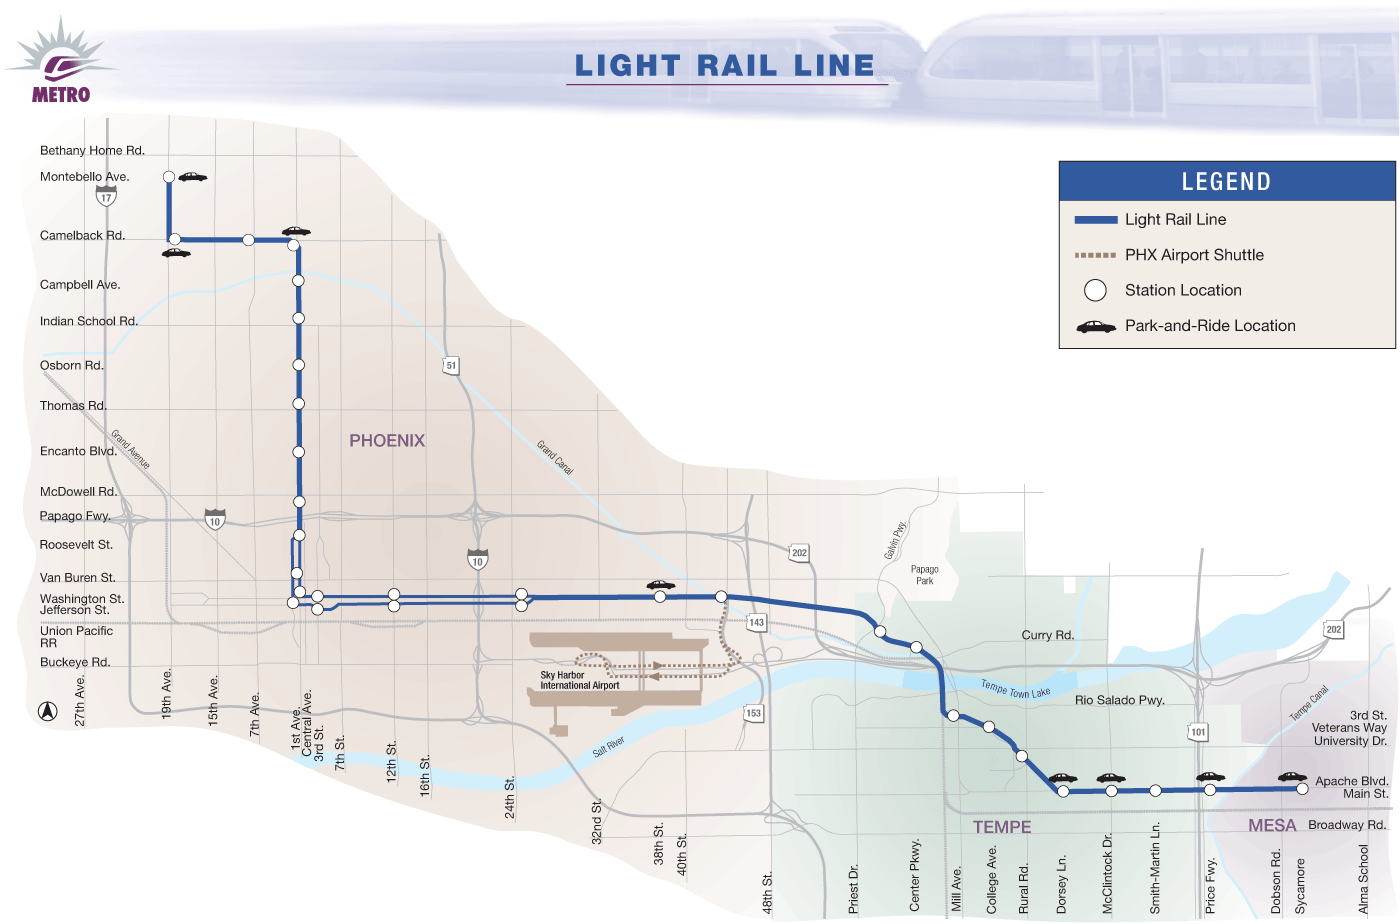 Light Rail Map Phoenix Phoenix Metro Light Rail Map (subway) • Mapsof.net